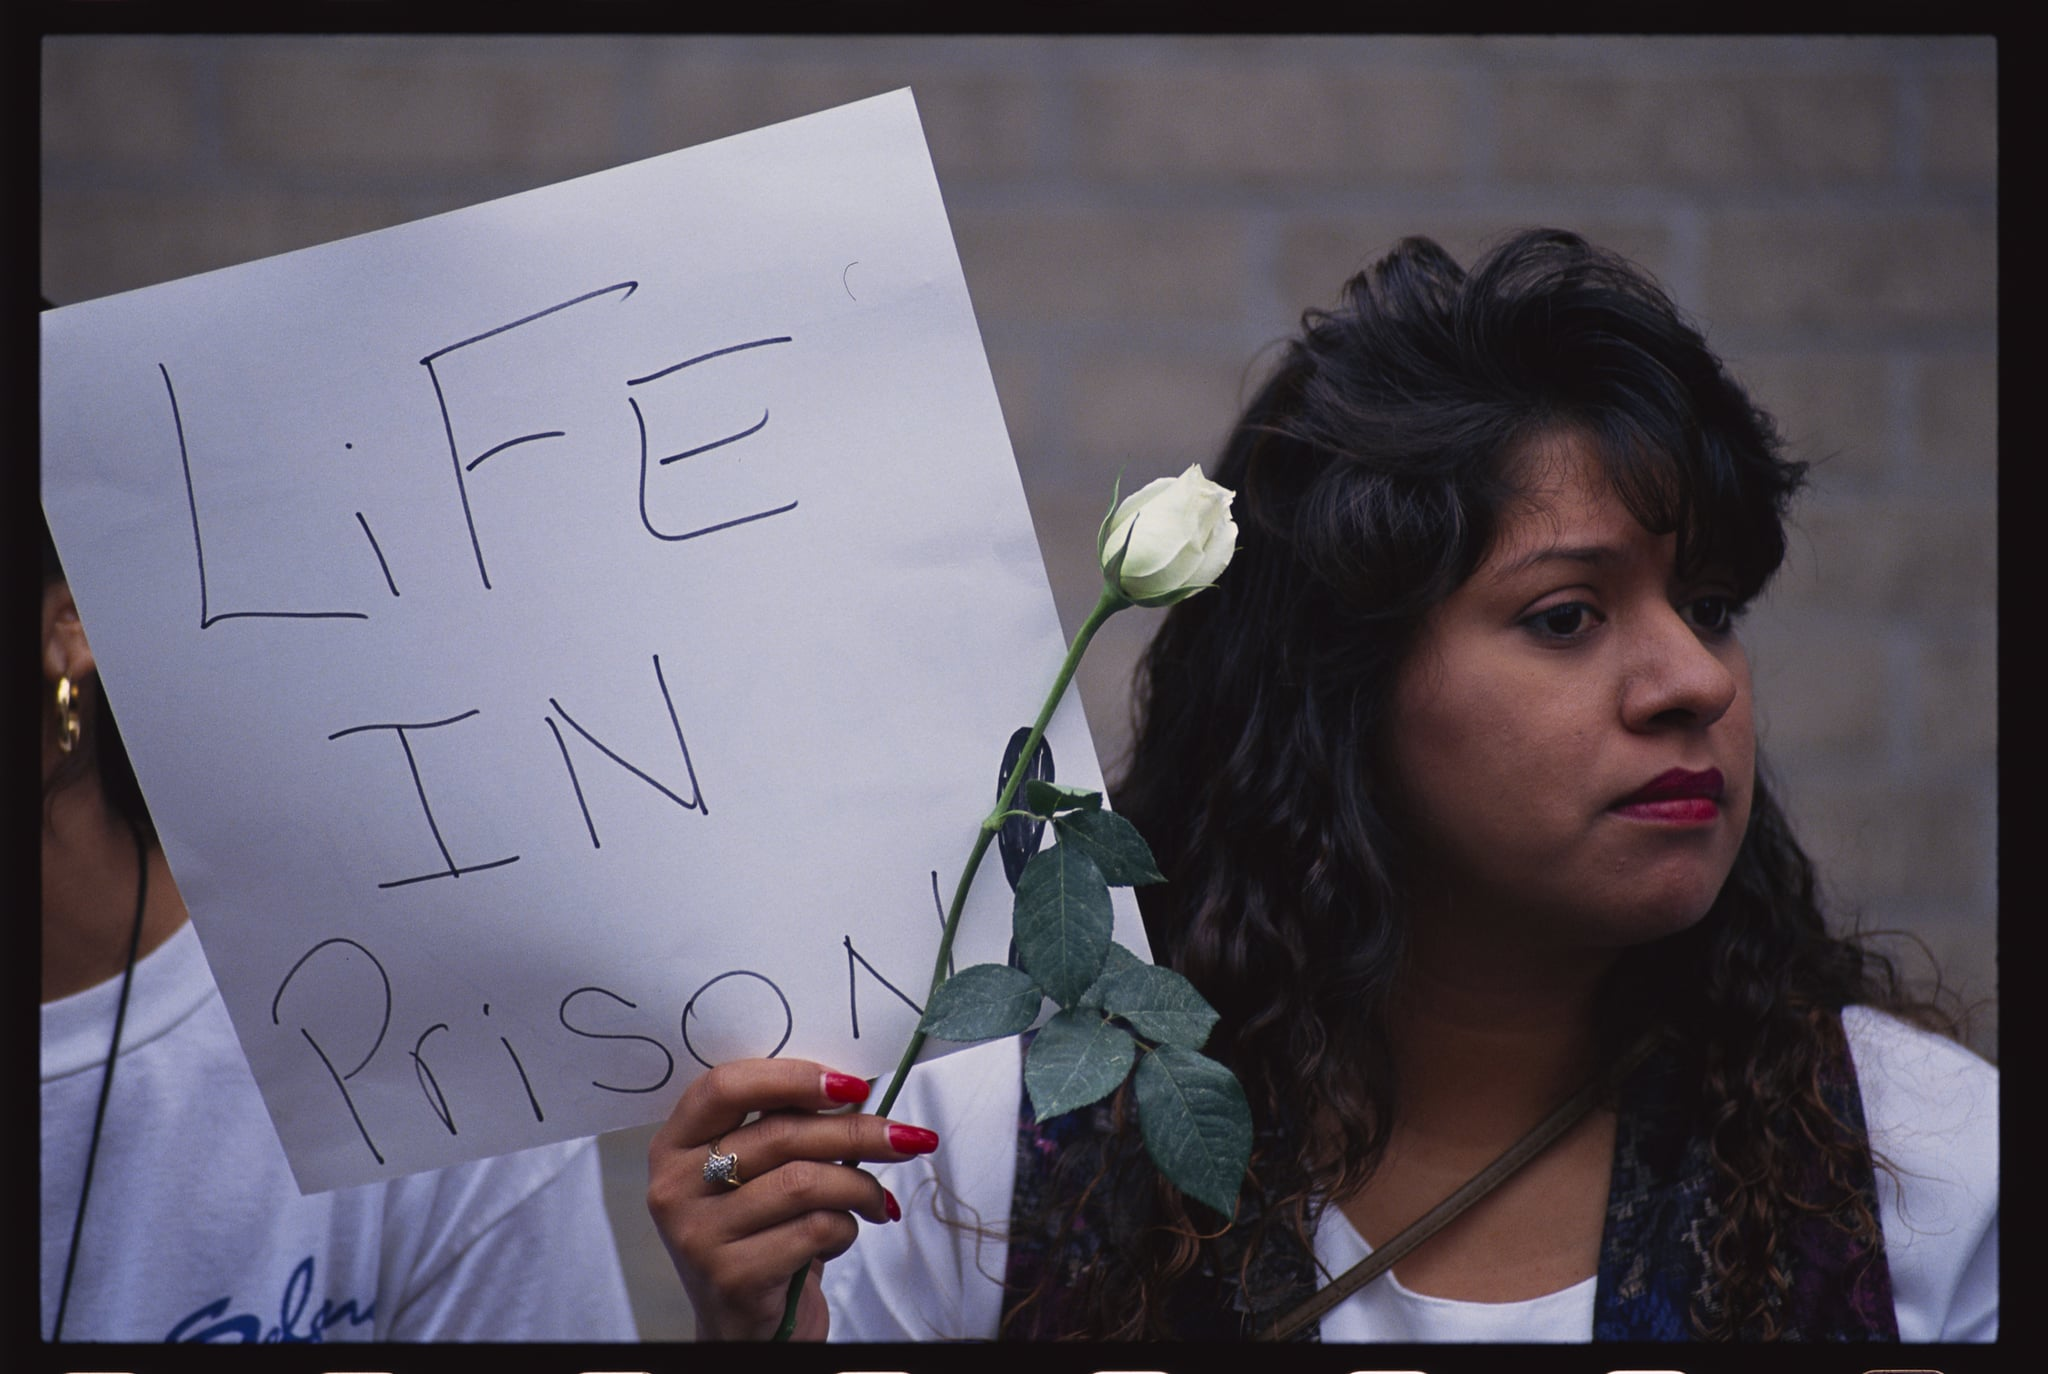 A Selena fan holds a sign outside the courthouse in Houston, Texas where the slain singer's murder trail is being heard. (Photo by © Greg Smith/CORBIS/Corbis via Getty Images)